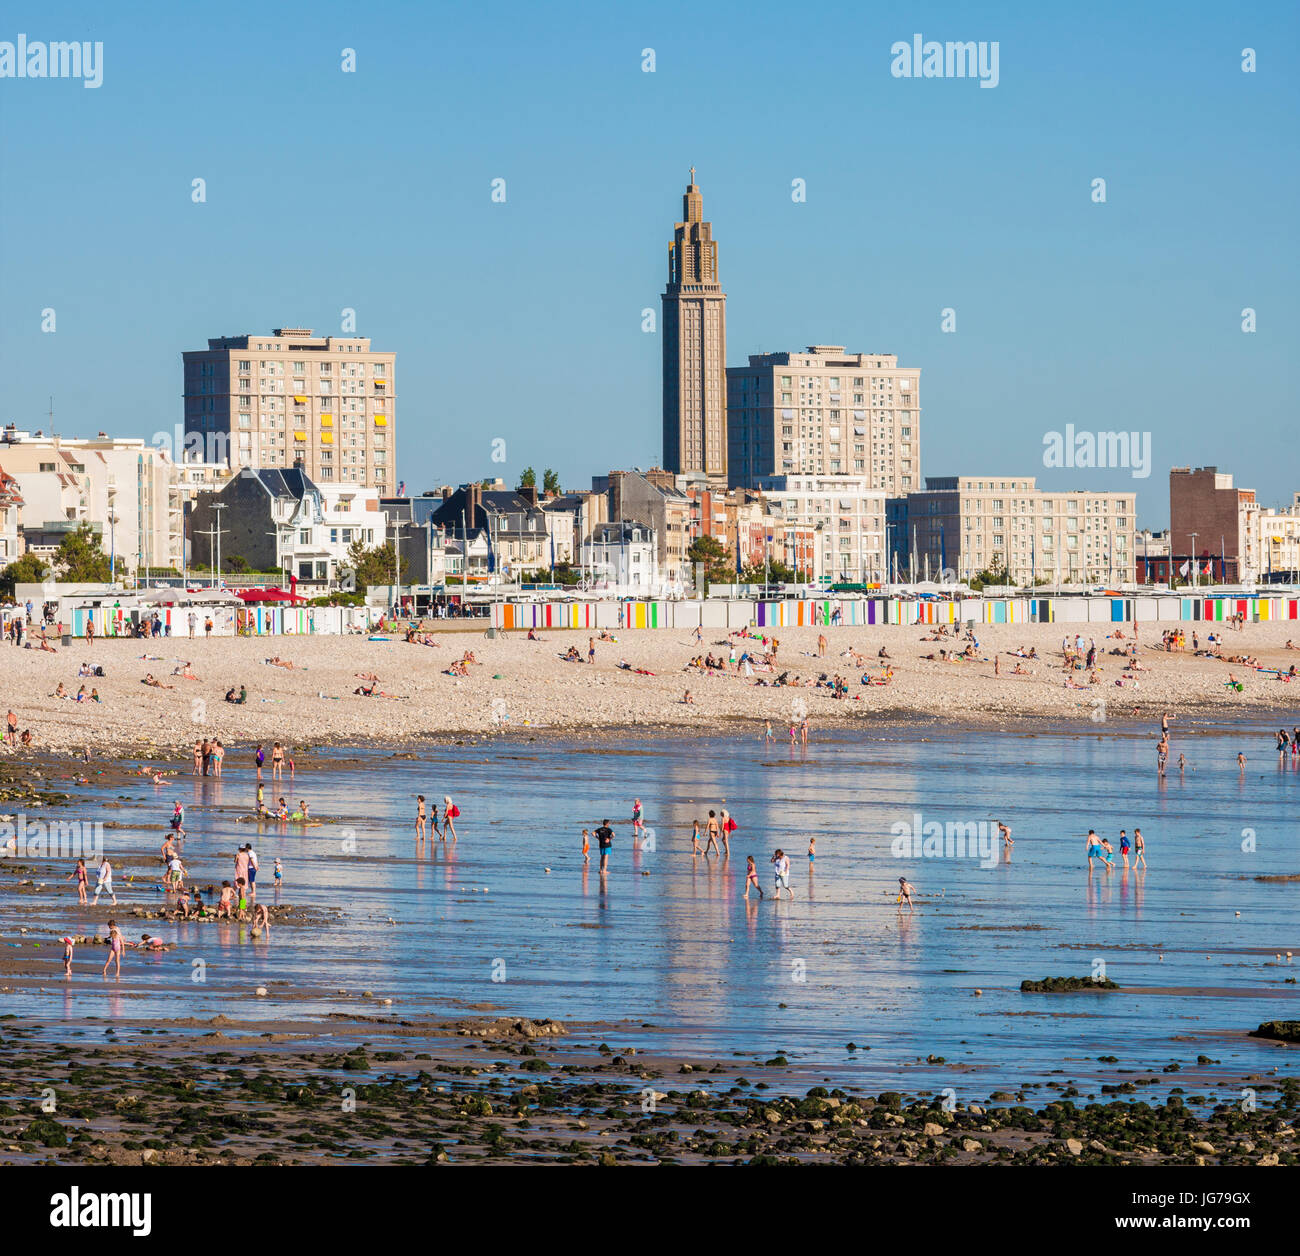 Beach, Low Tide, Le Havre, Normandy, France - Stock Image